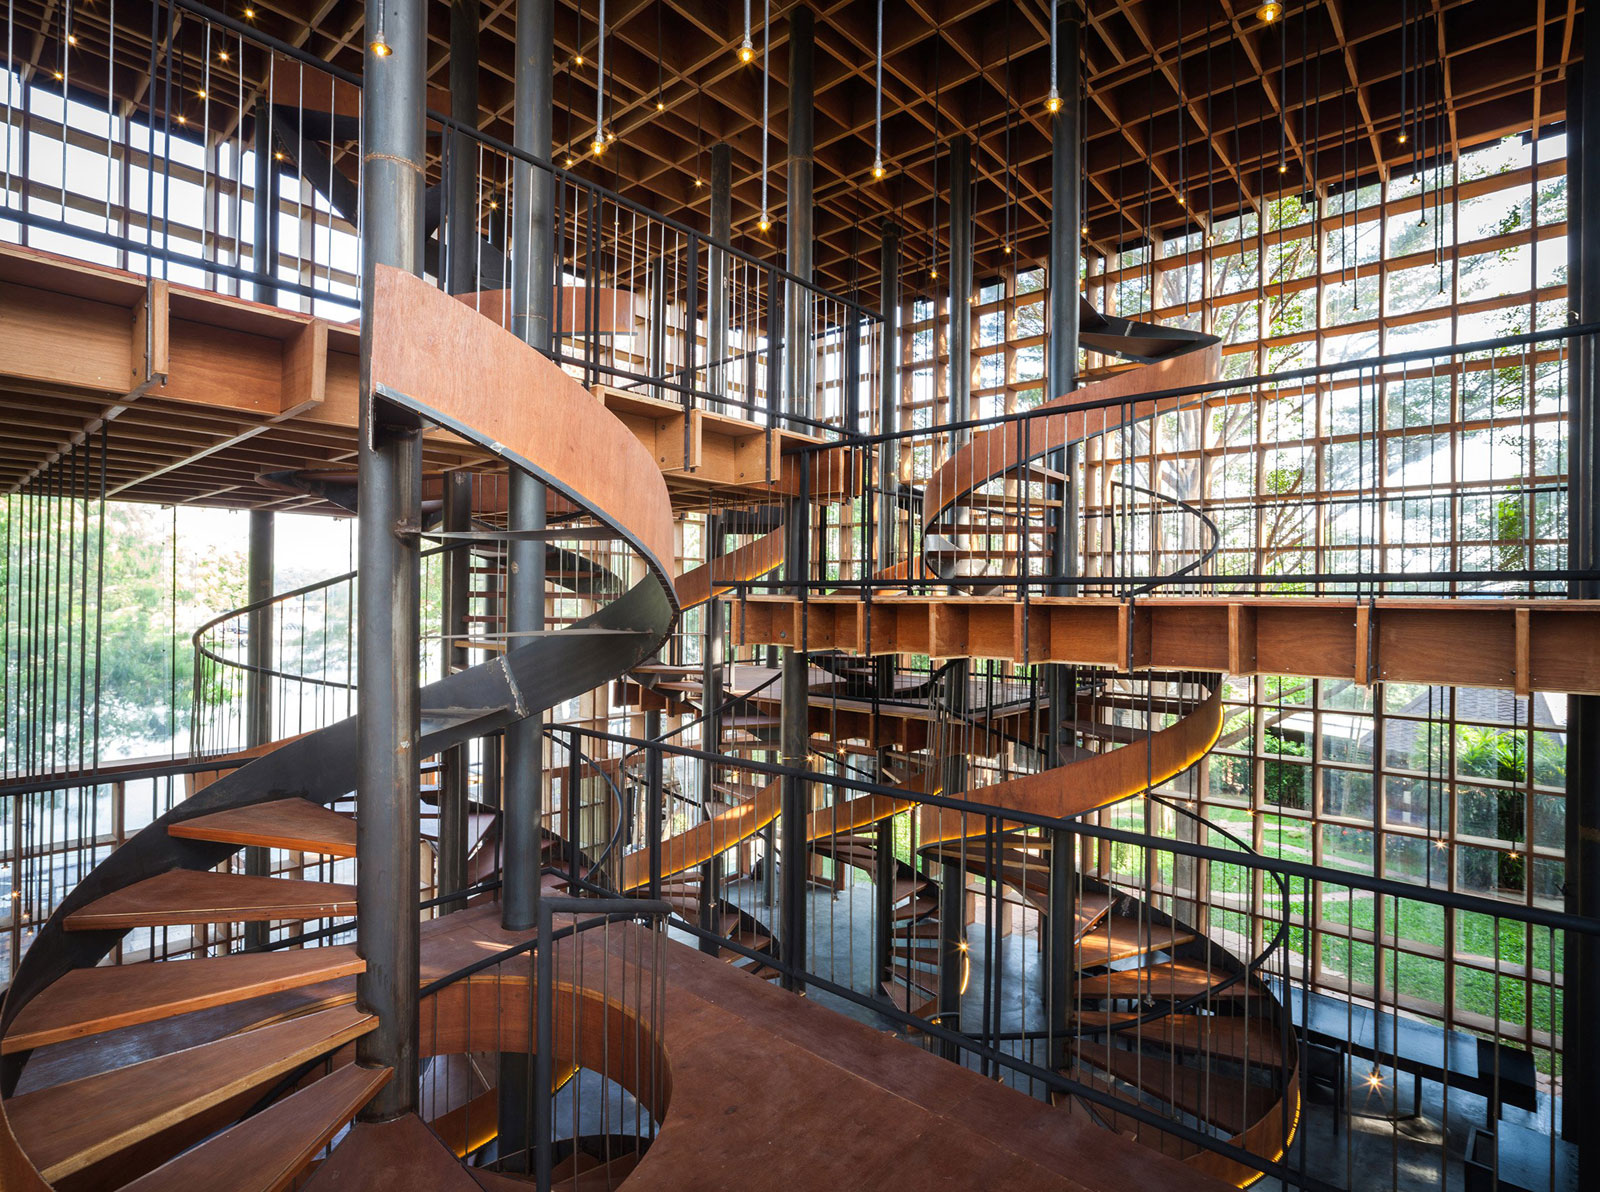 wine-bangkok-project-studio-architecture-public-leisure-thailand-_dezeen_2364_col_26